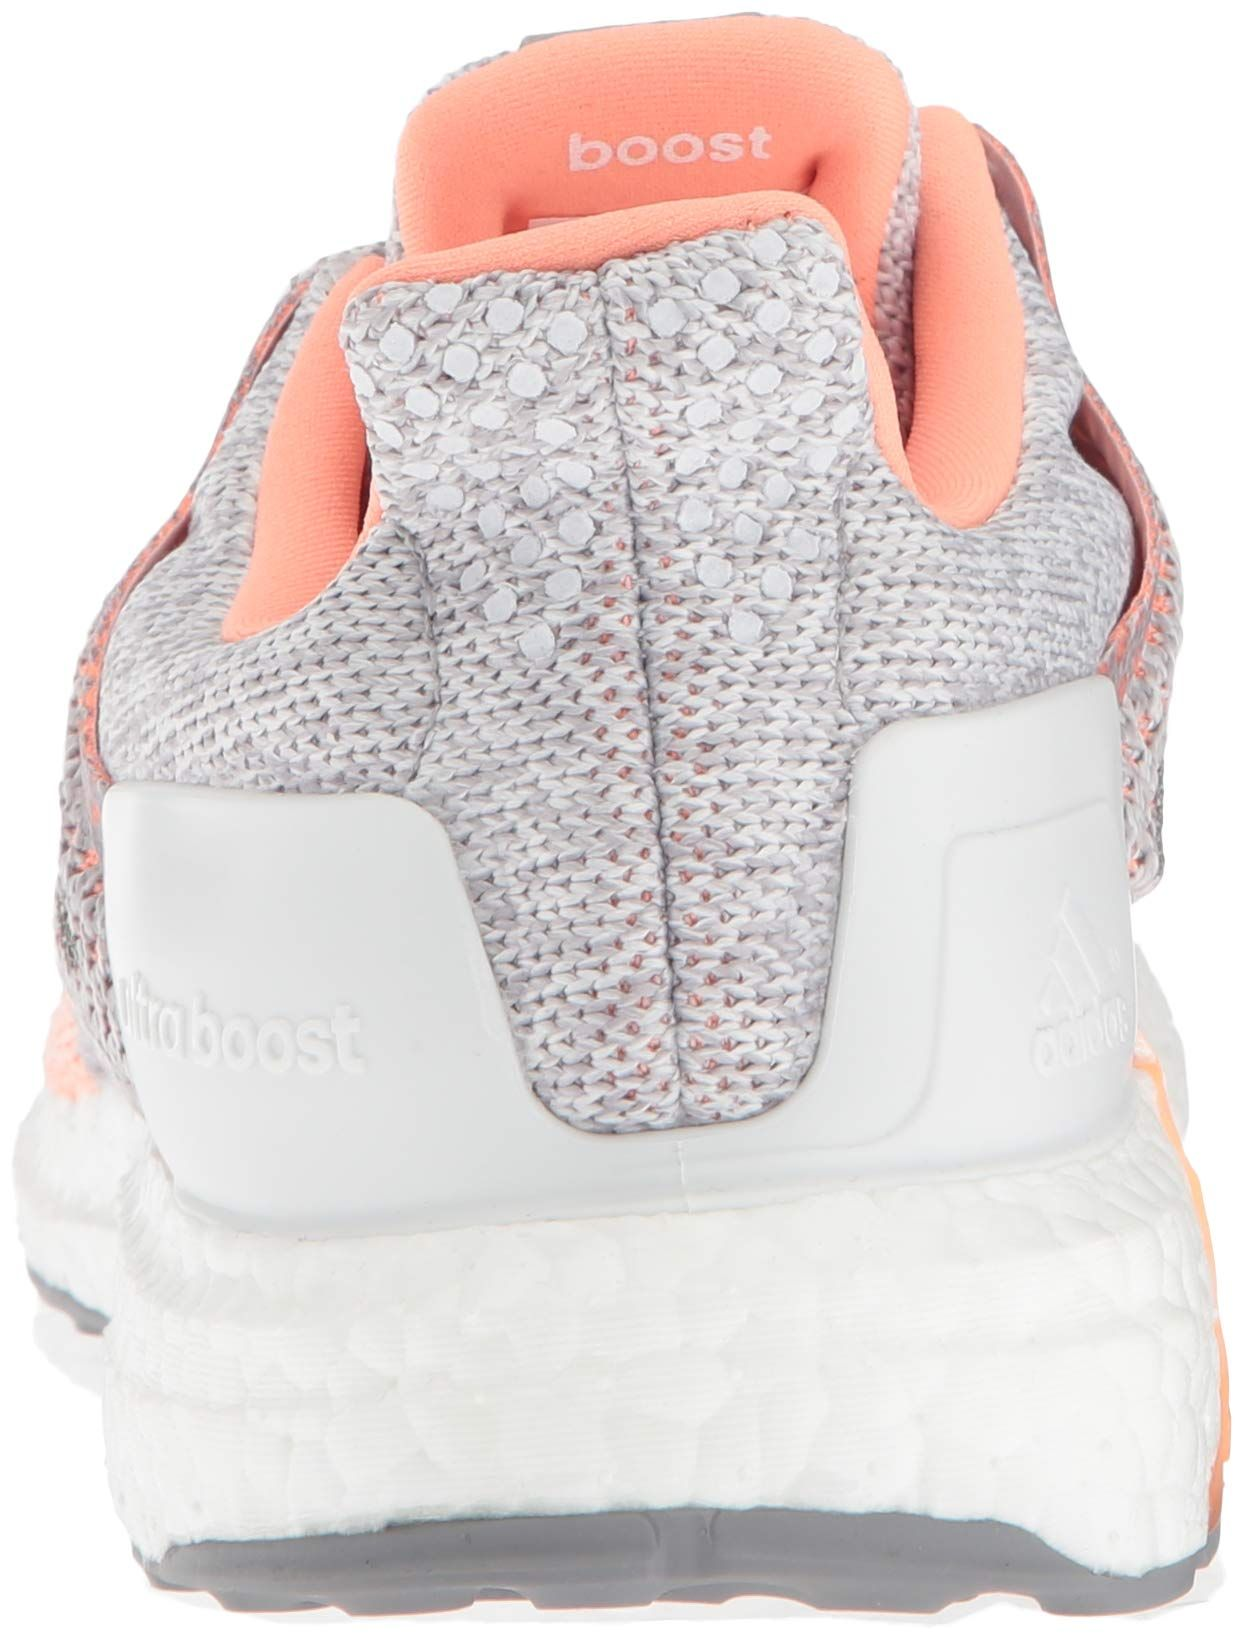 new photos 7e070 48f43 adidas Womens Ultraboost ST Running Shoe Crystal White Grey Clear Orange 8 M  US   Read more at the image link-affiliate link.  adidaswomensrunningshoes